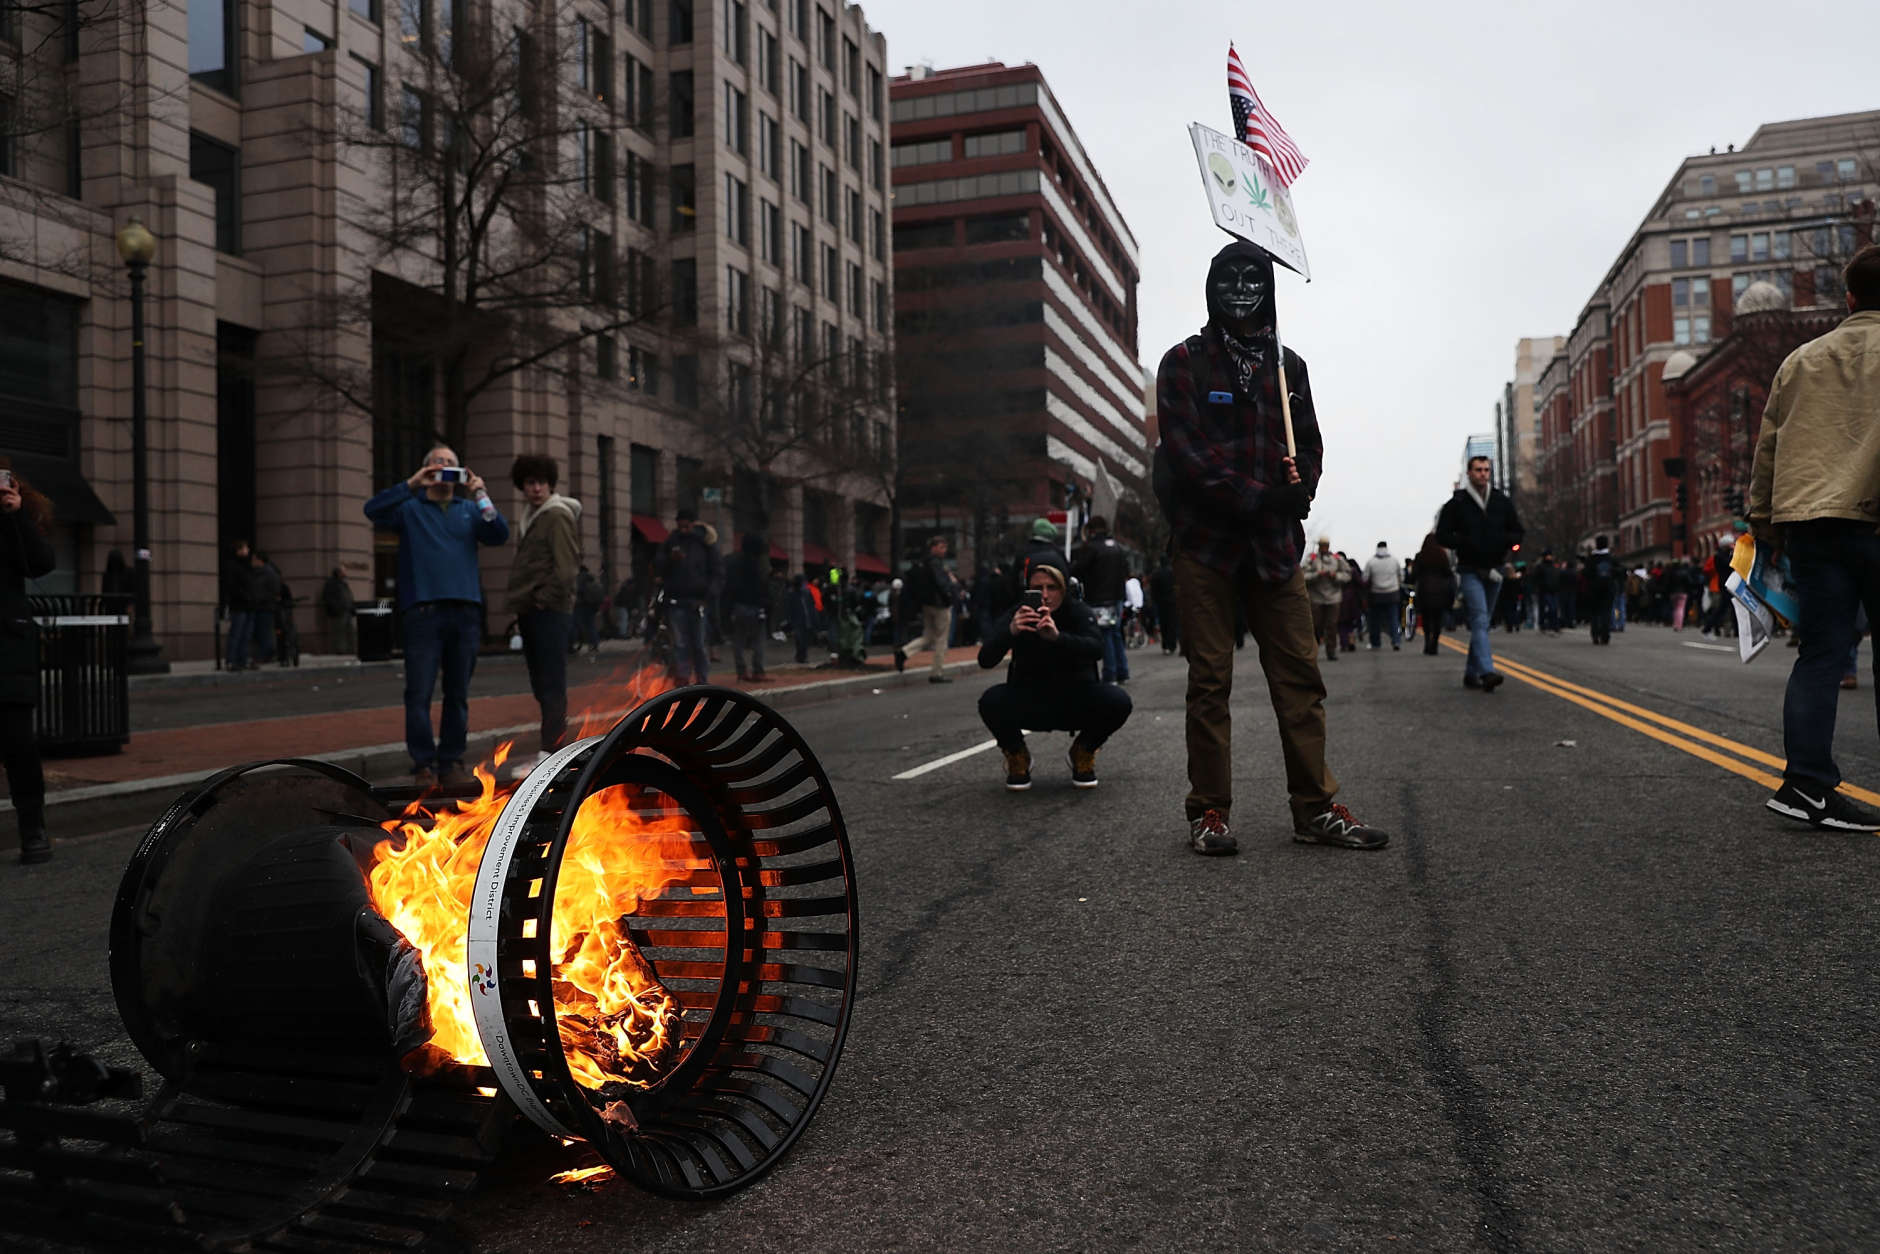 WASHINGTON, DC - JANUARY 20:  Police and demonstrators clash in downtown Washington D.C. following the inauguration of President Donald J. Trump on January 20, 2017 in Washington, DC. Washington and the entire world have watched the transfer of the United States presidency from Barack Obama to Donald Trump, the 45th president.  (Photo by Spencer Platt/Getty Images)